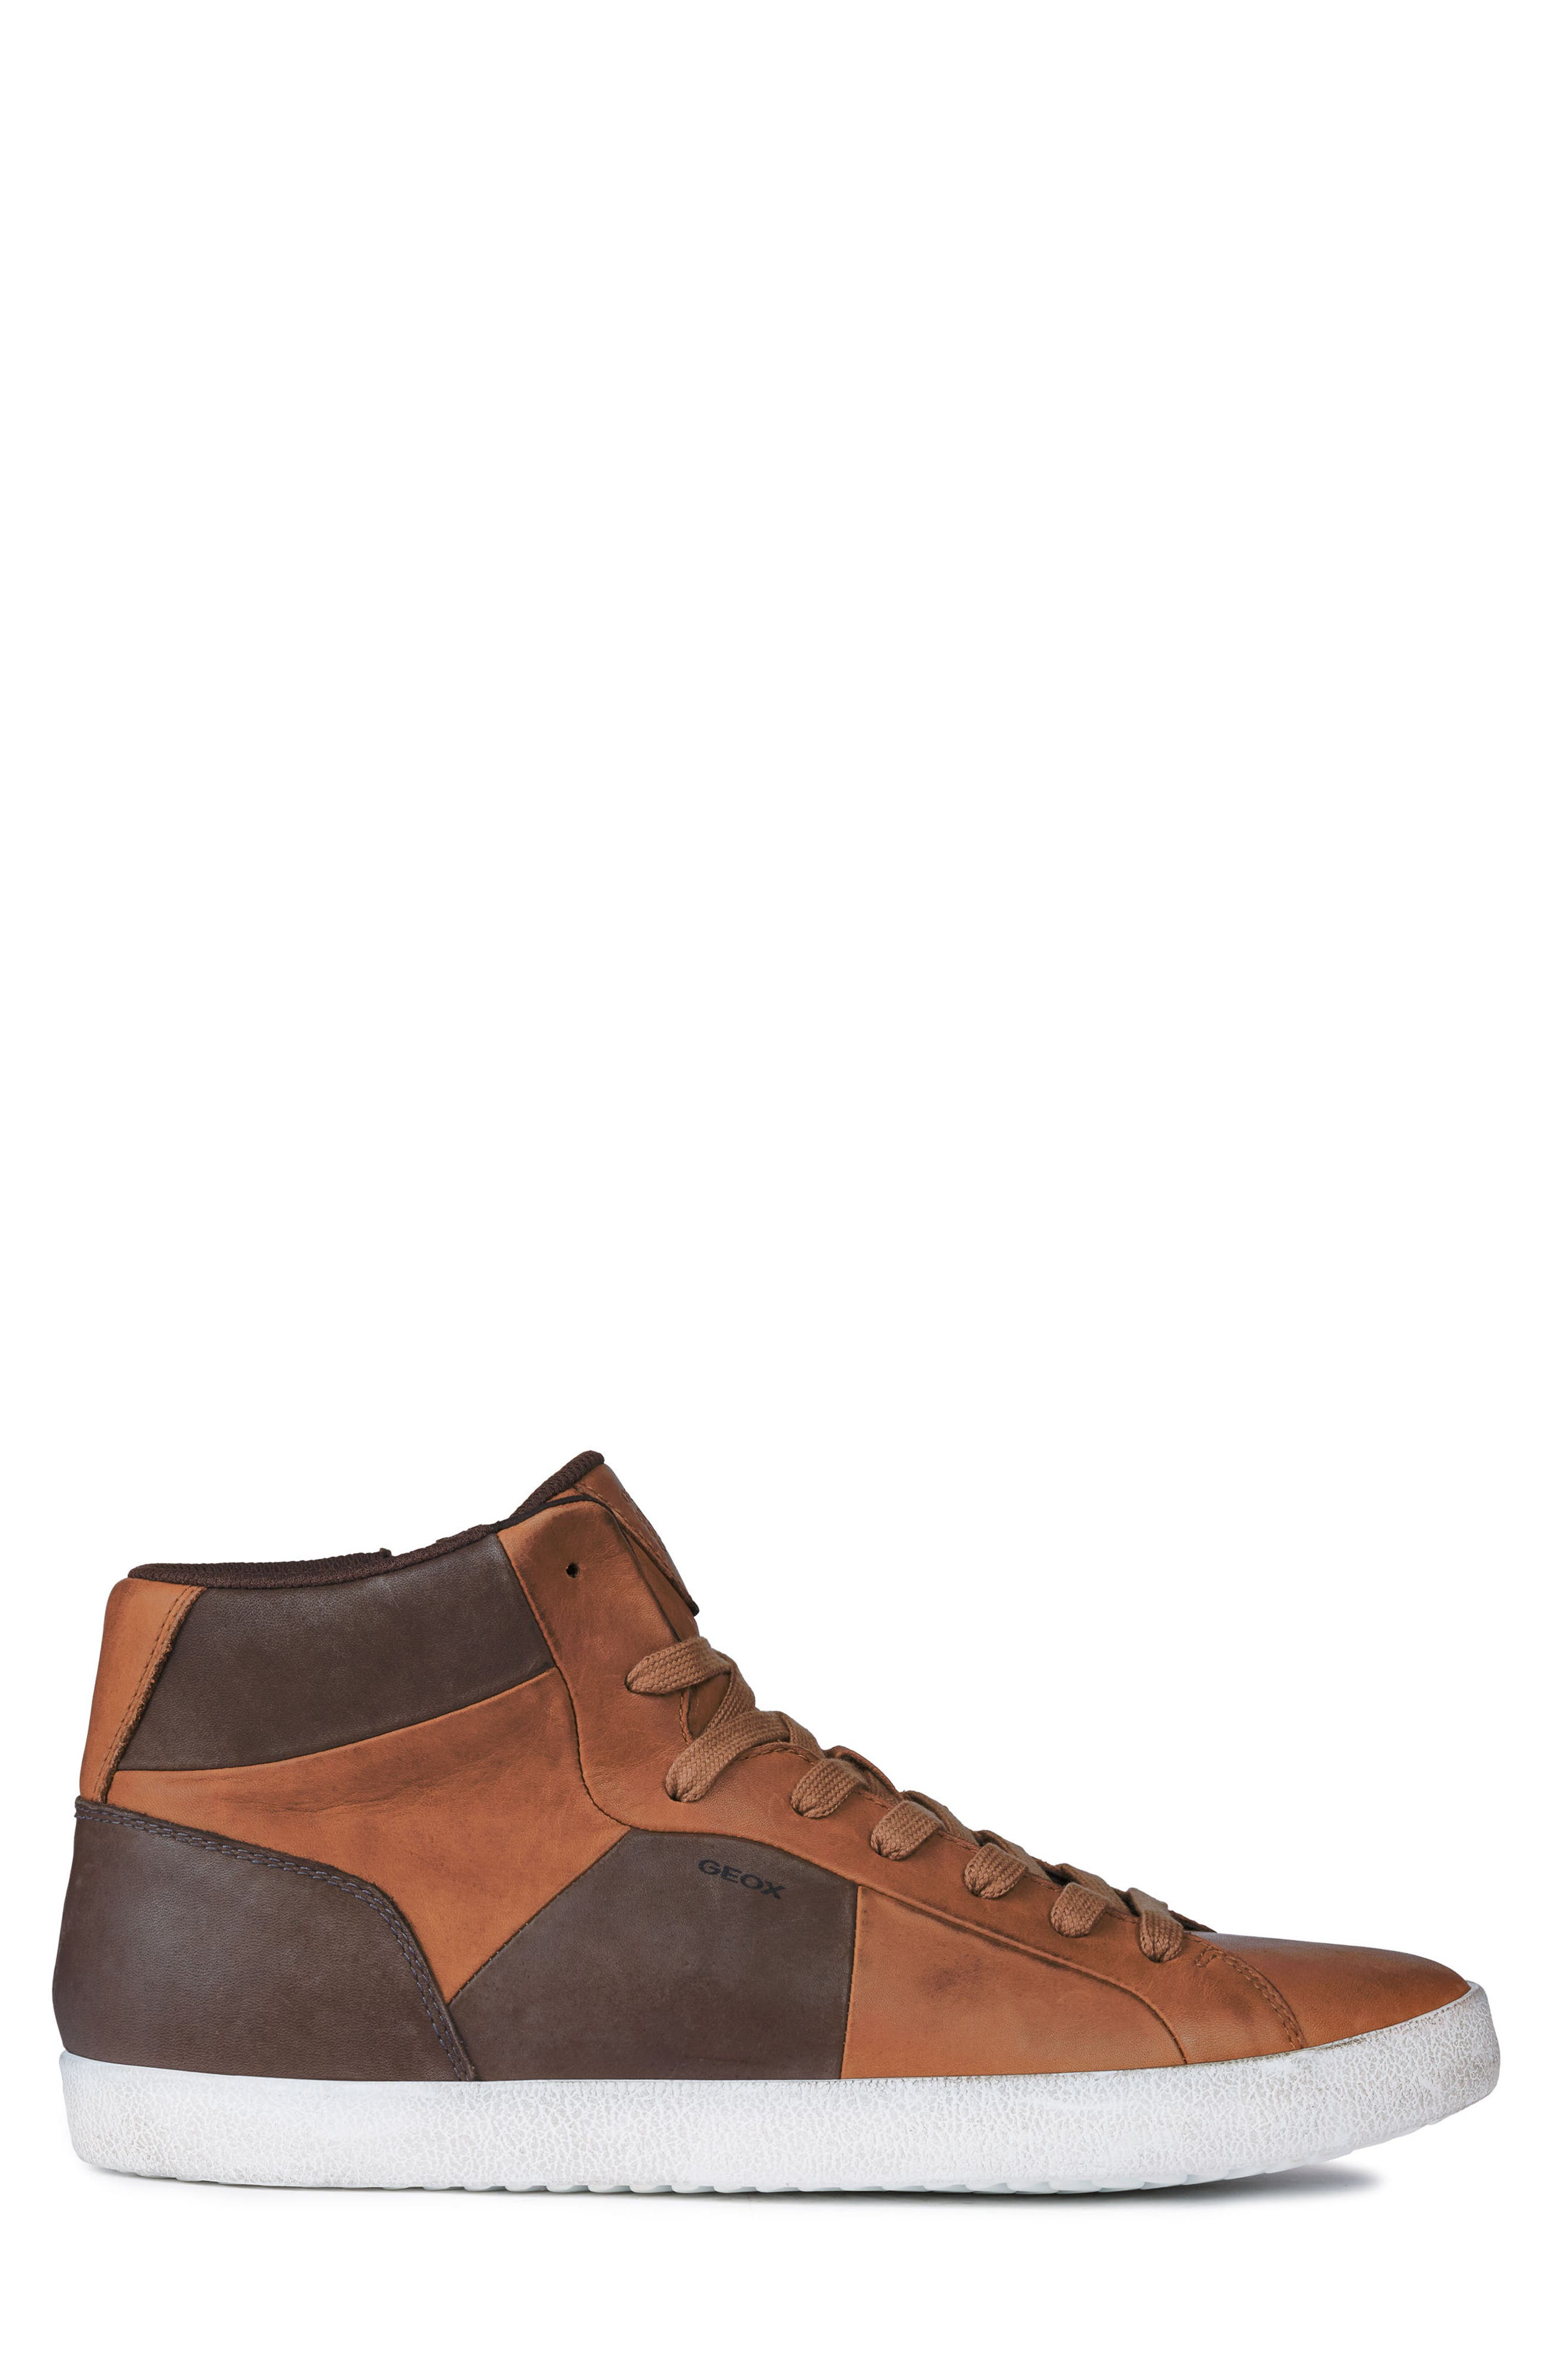 Smart 84 High Top Sneaker,                             Alternate thumbnail 3, color,                             COGNAC/ COFFEE LEATHER